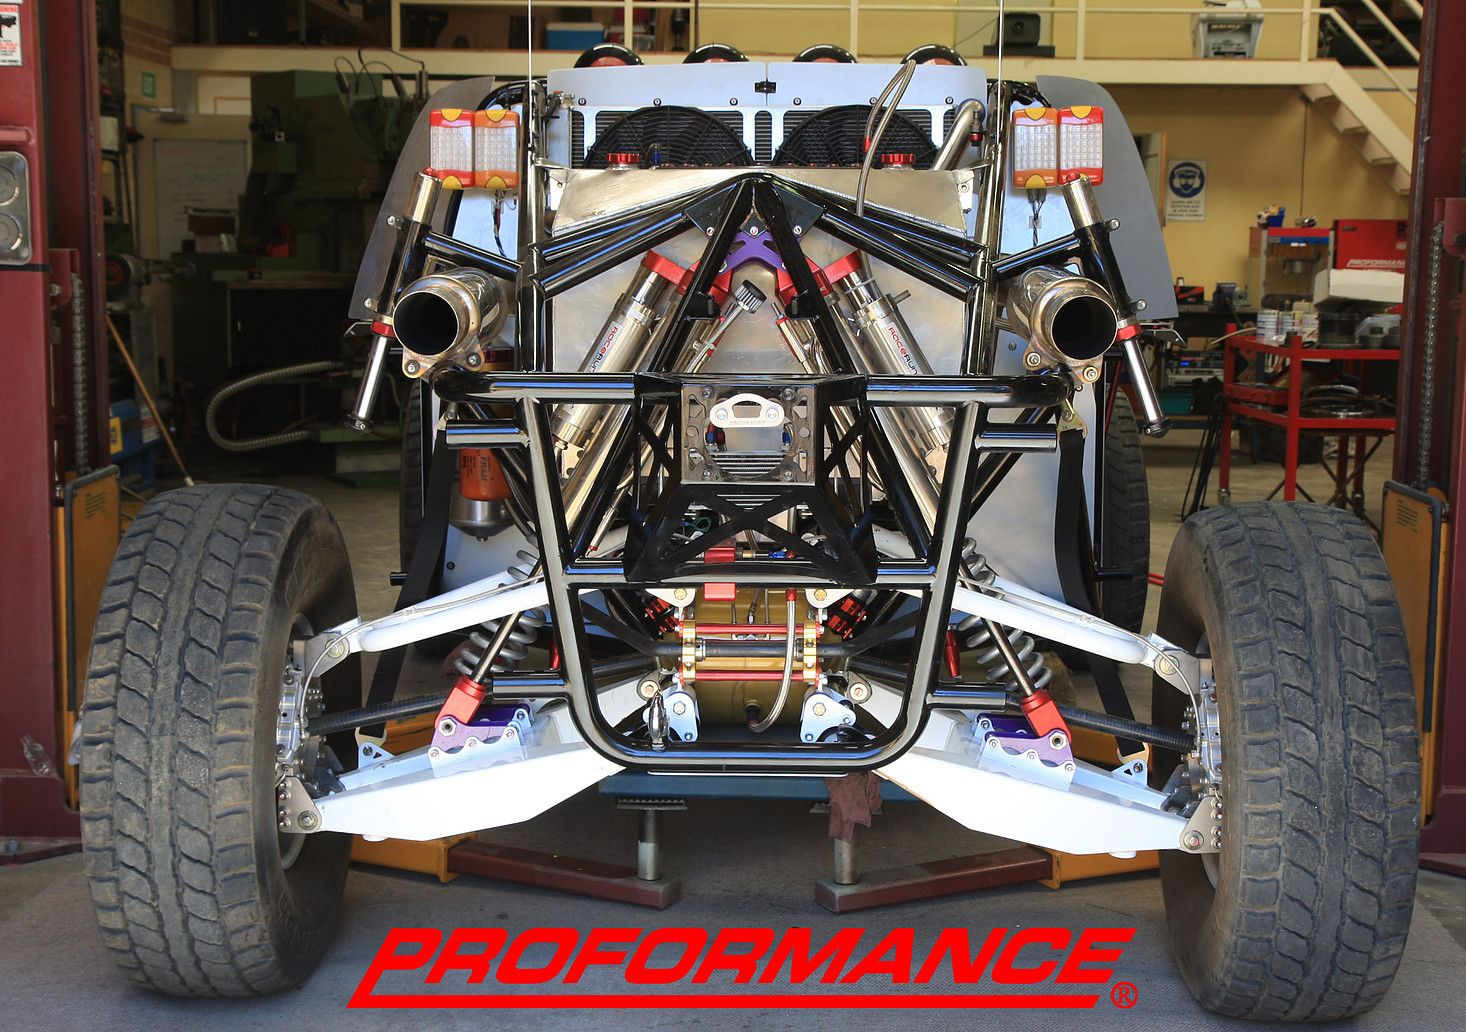 PROFORMANCE 4WD Trophy Truck IFS IRS OffRoad